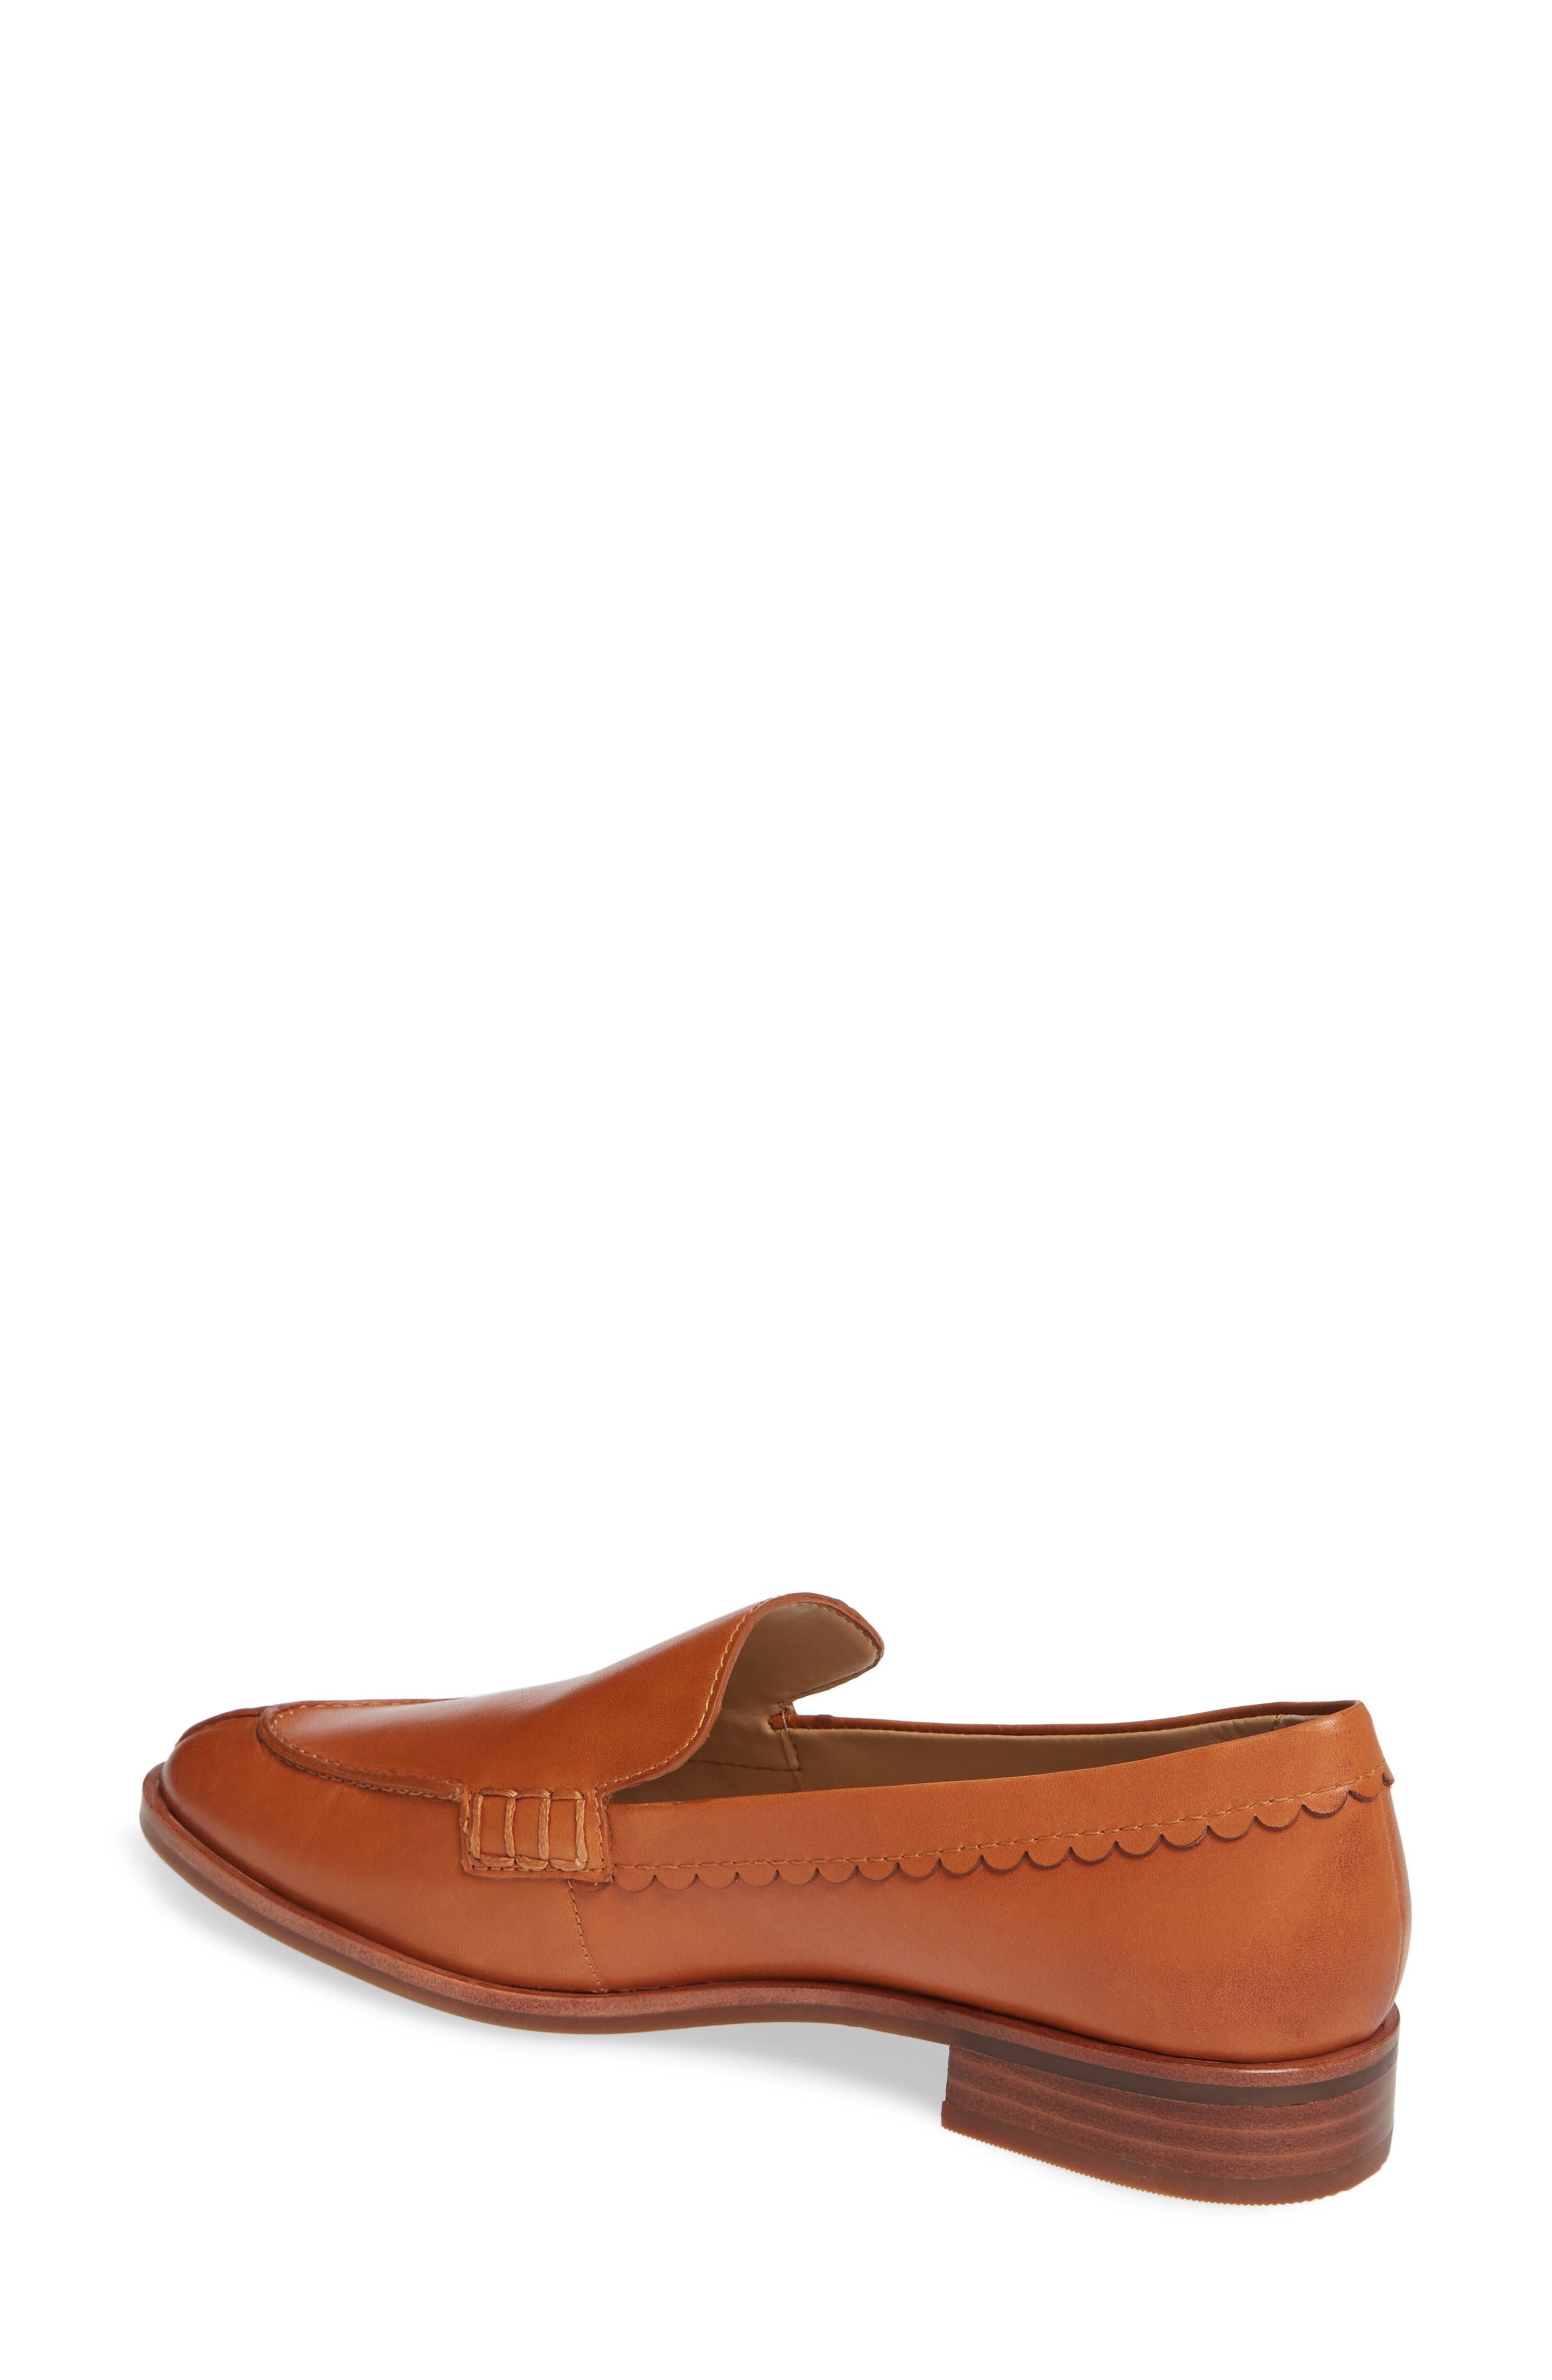 Bowery Loafer,                             Alternate thumbnail 2, color,                             COCONUT VACHETTA LEATHER